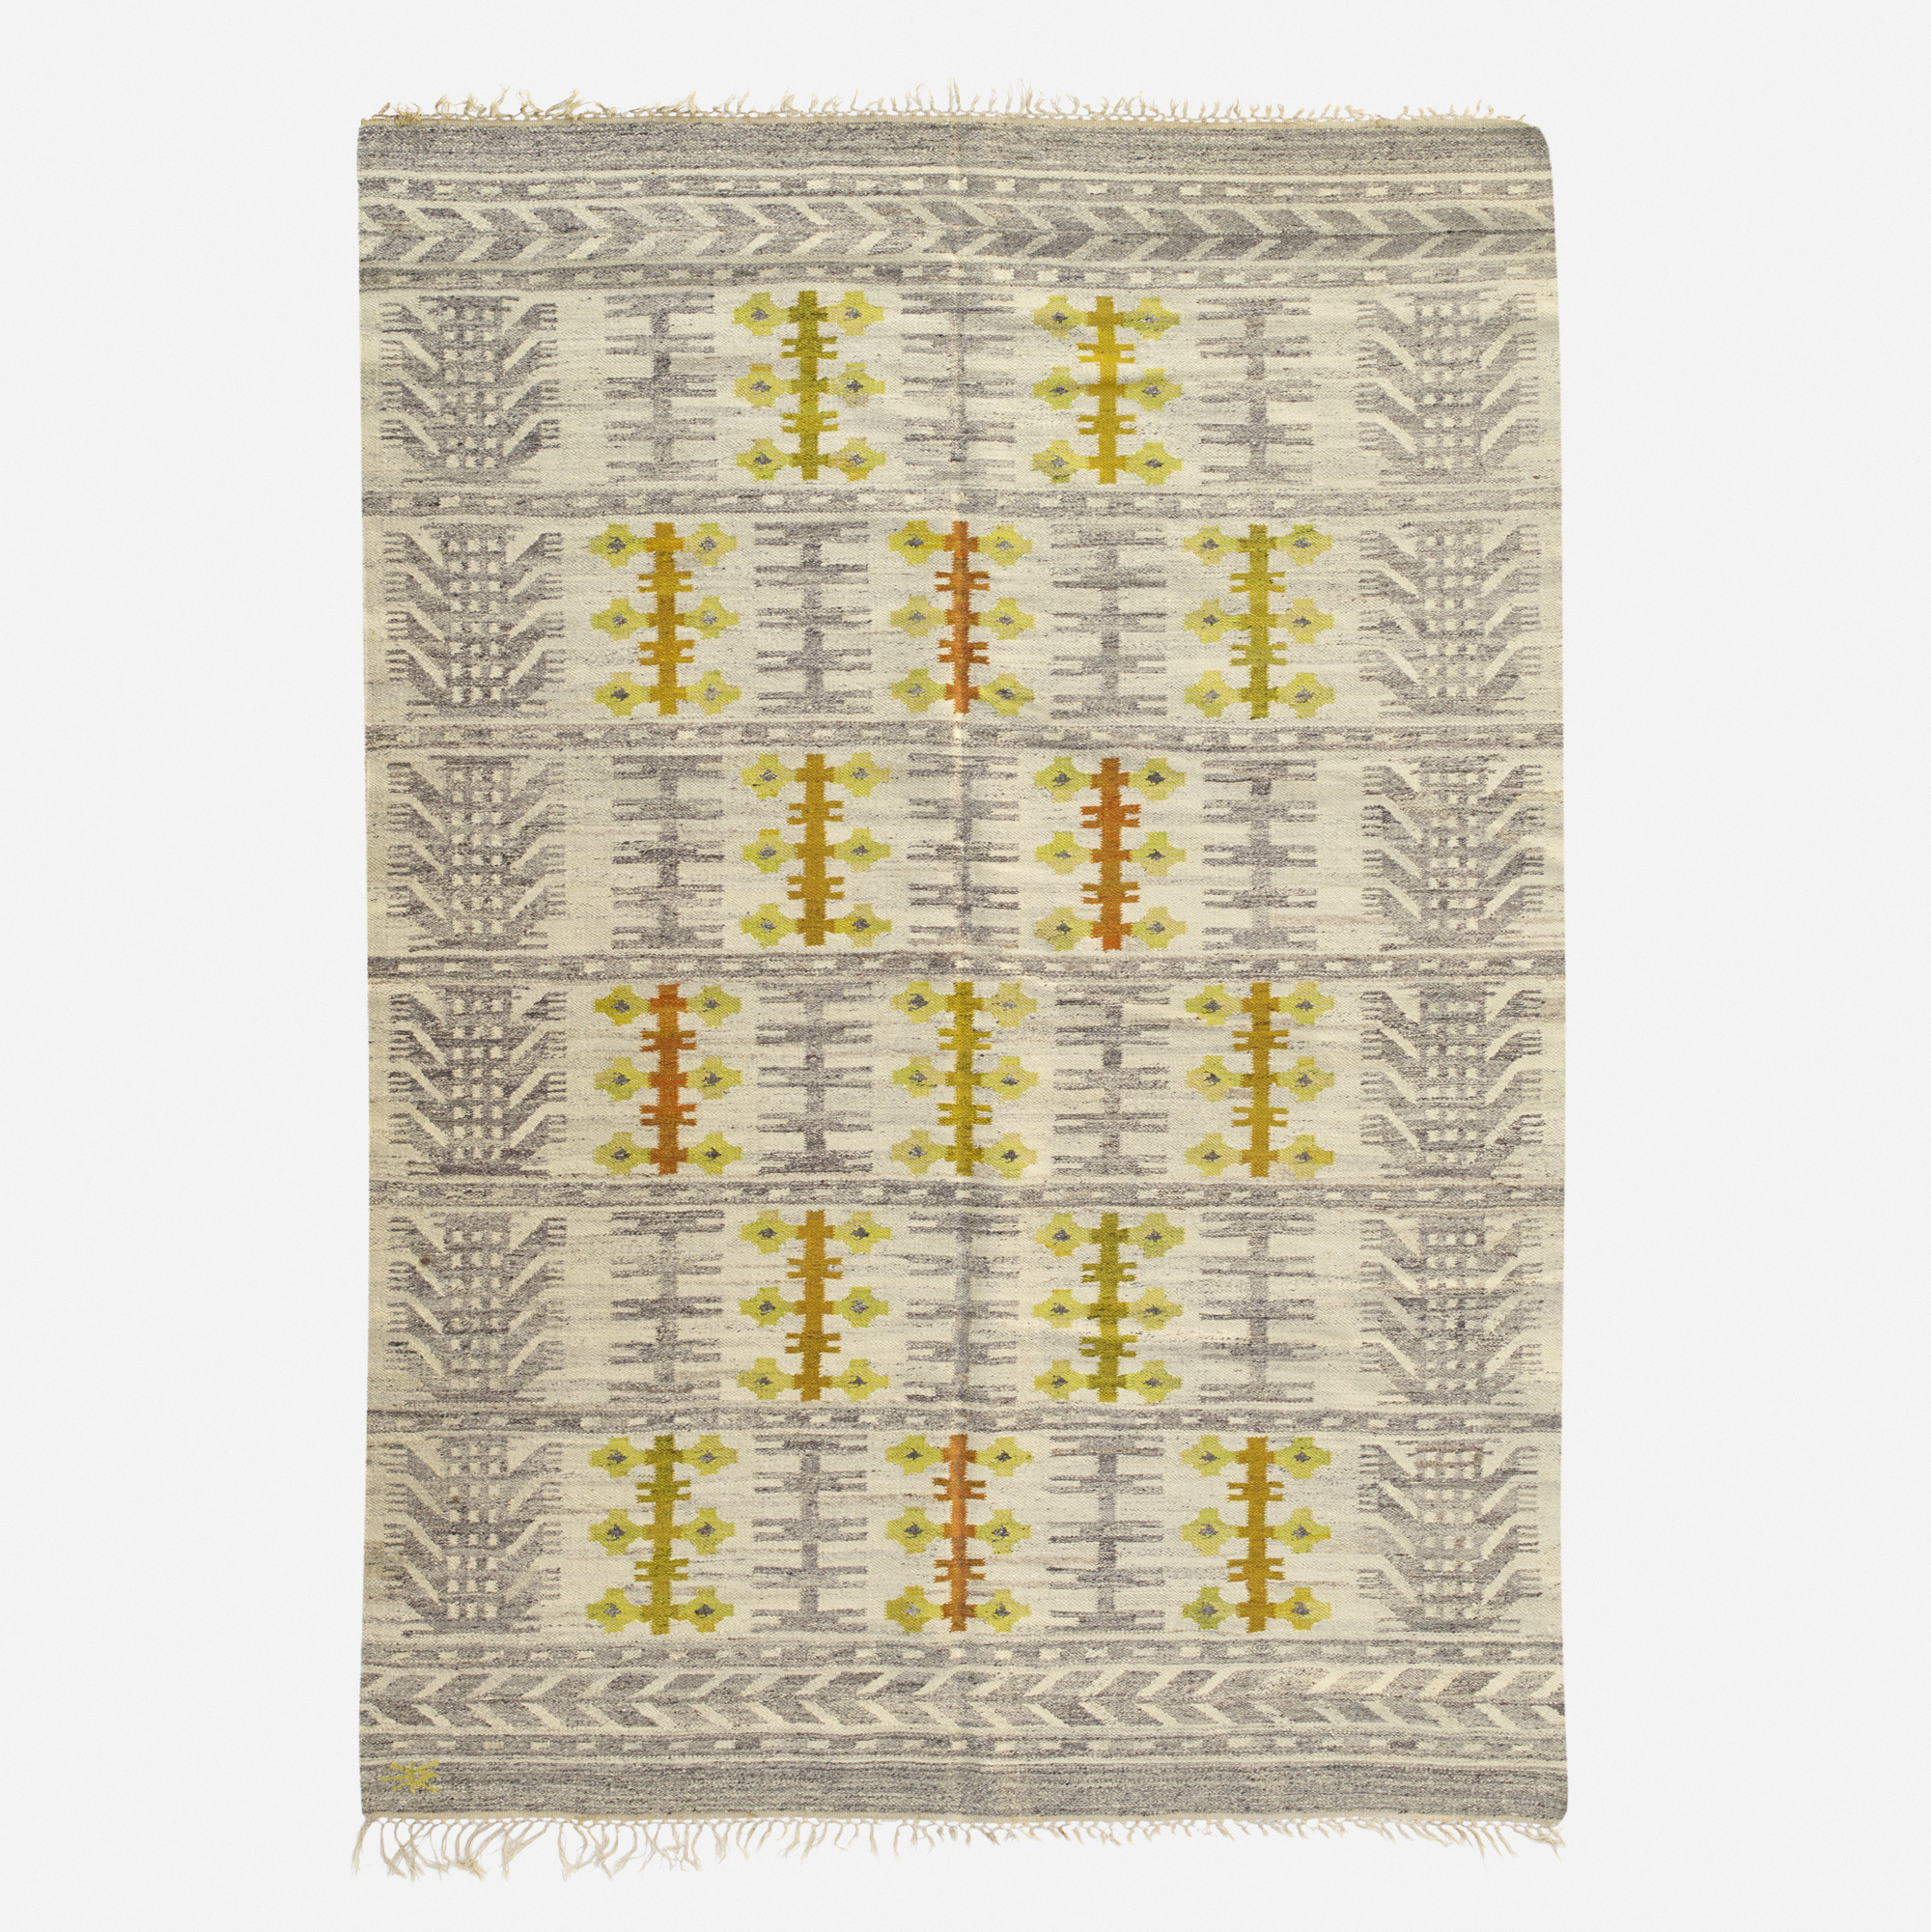 257: Swedish / flatweave carpet (1 of 2)